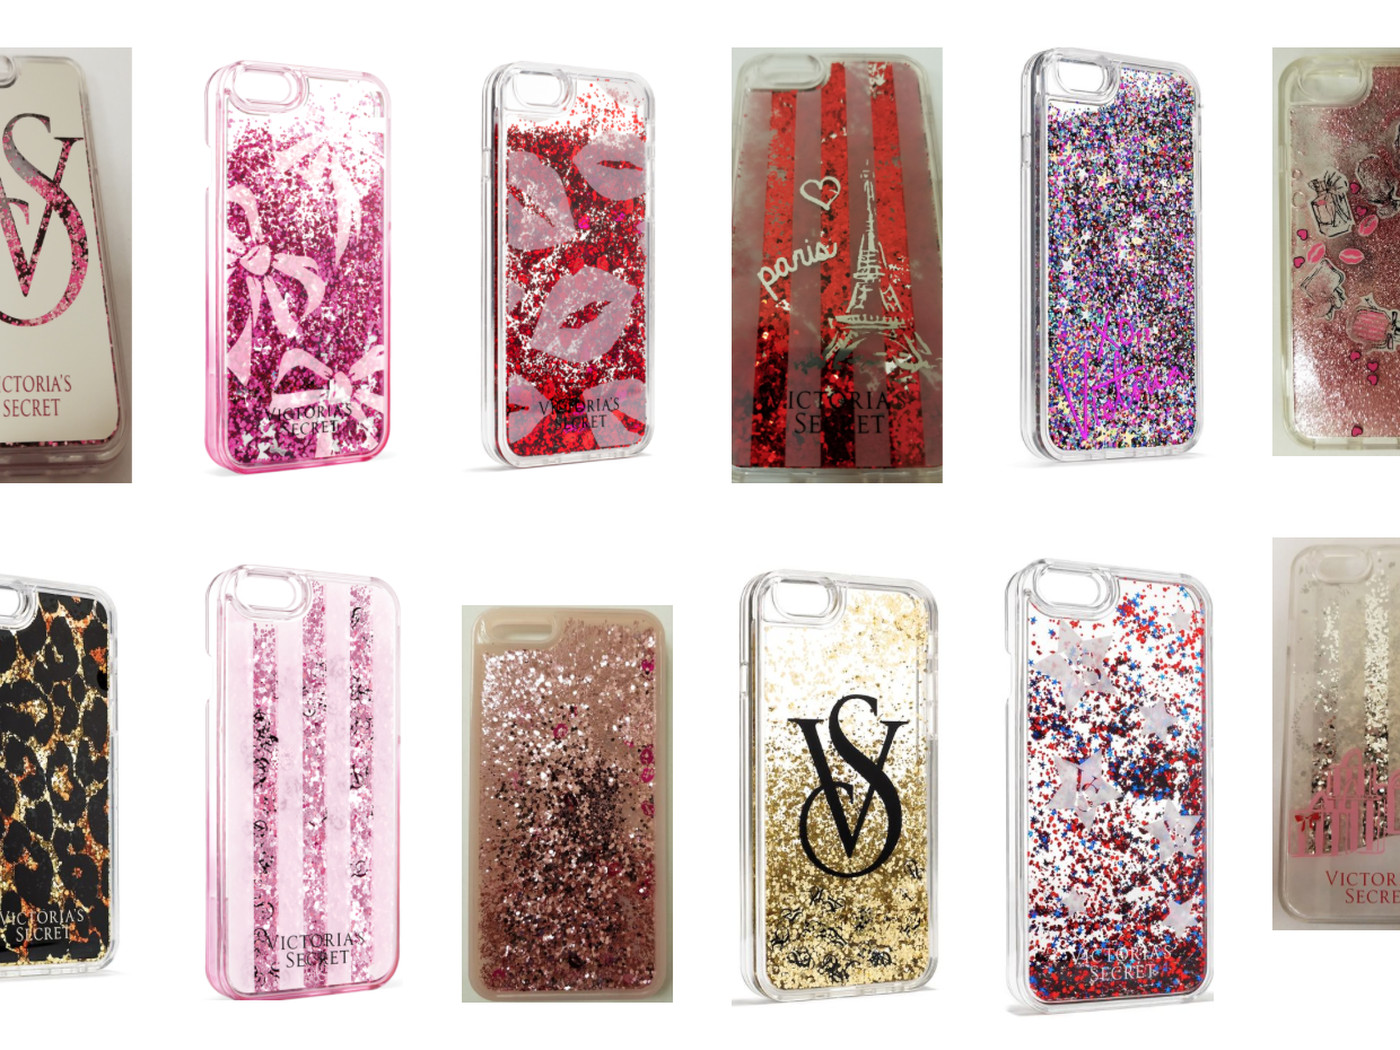 Victoria's Secret sold glittery iPhone cases that can cause ...